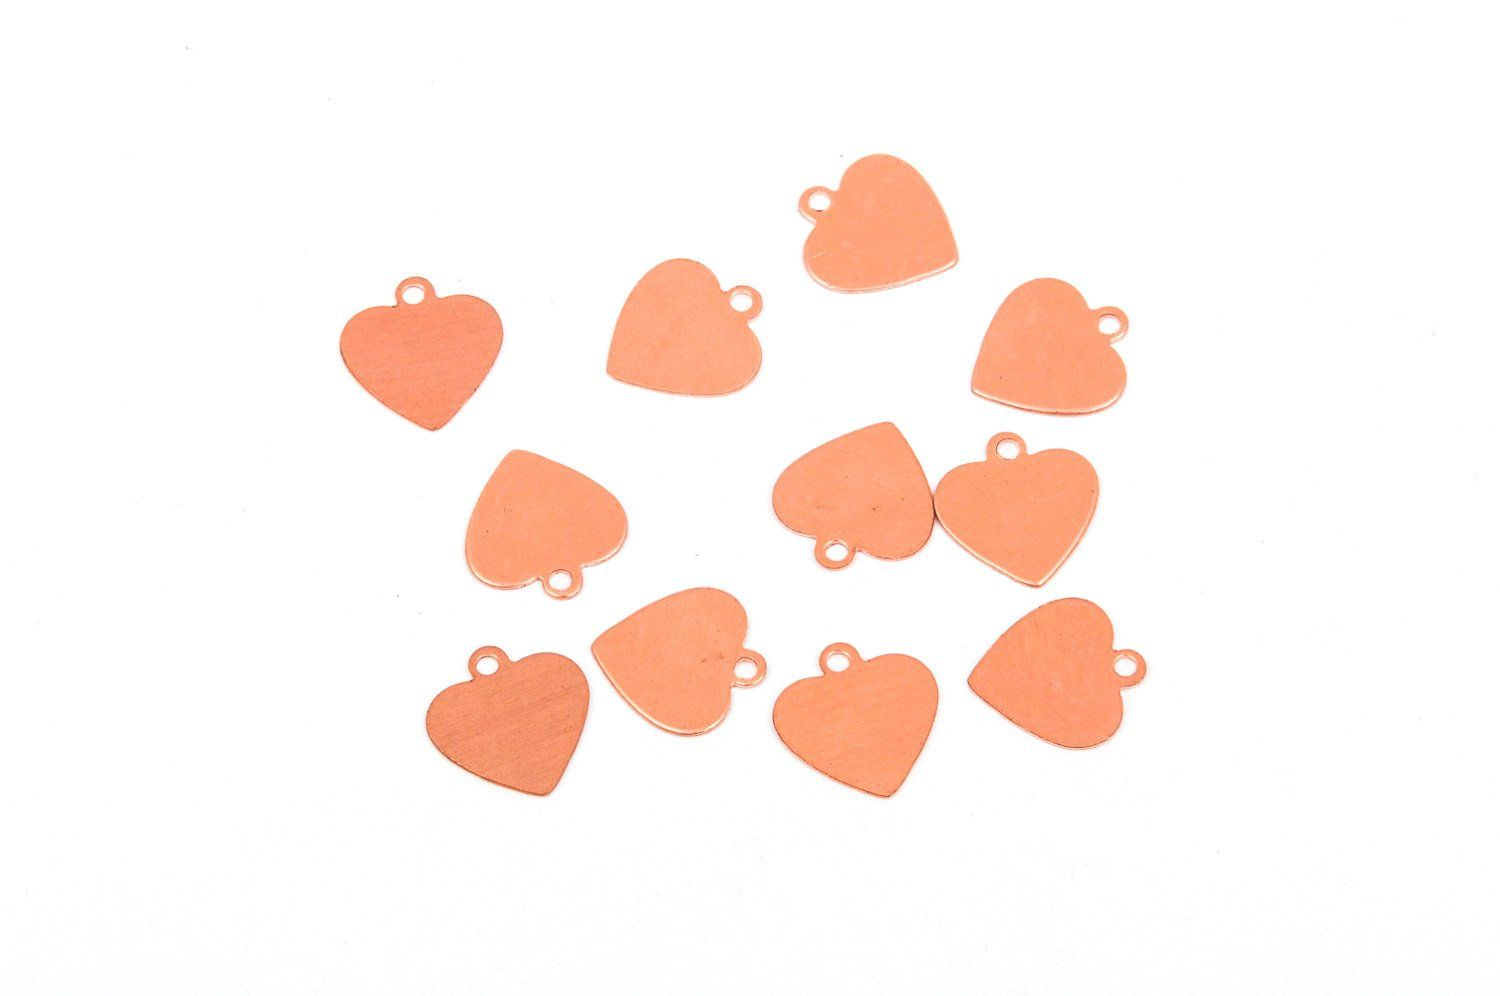 10 Pcs Small Heart Copper Metal Stamping Blanks Charms 1 2 13mm Tag 24 Gauge Msb0244 Metal Stamping Jewelry Making Supplies Copper Metal